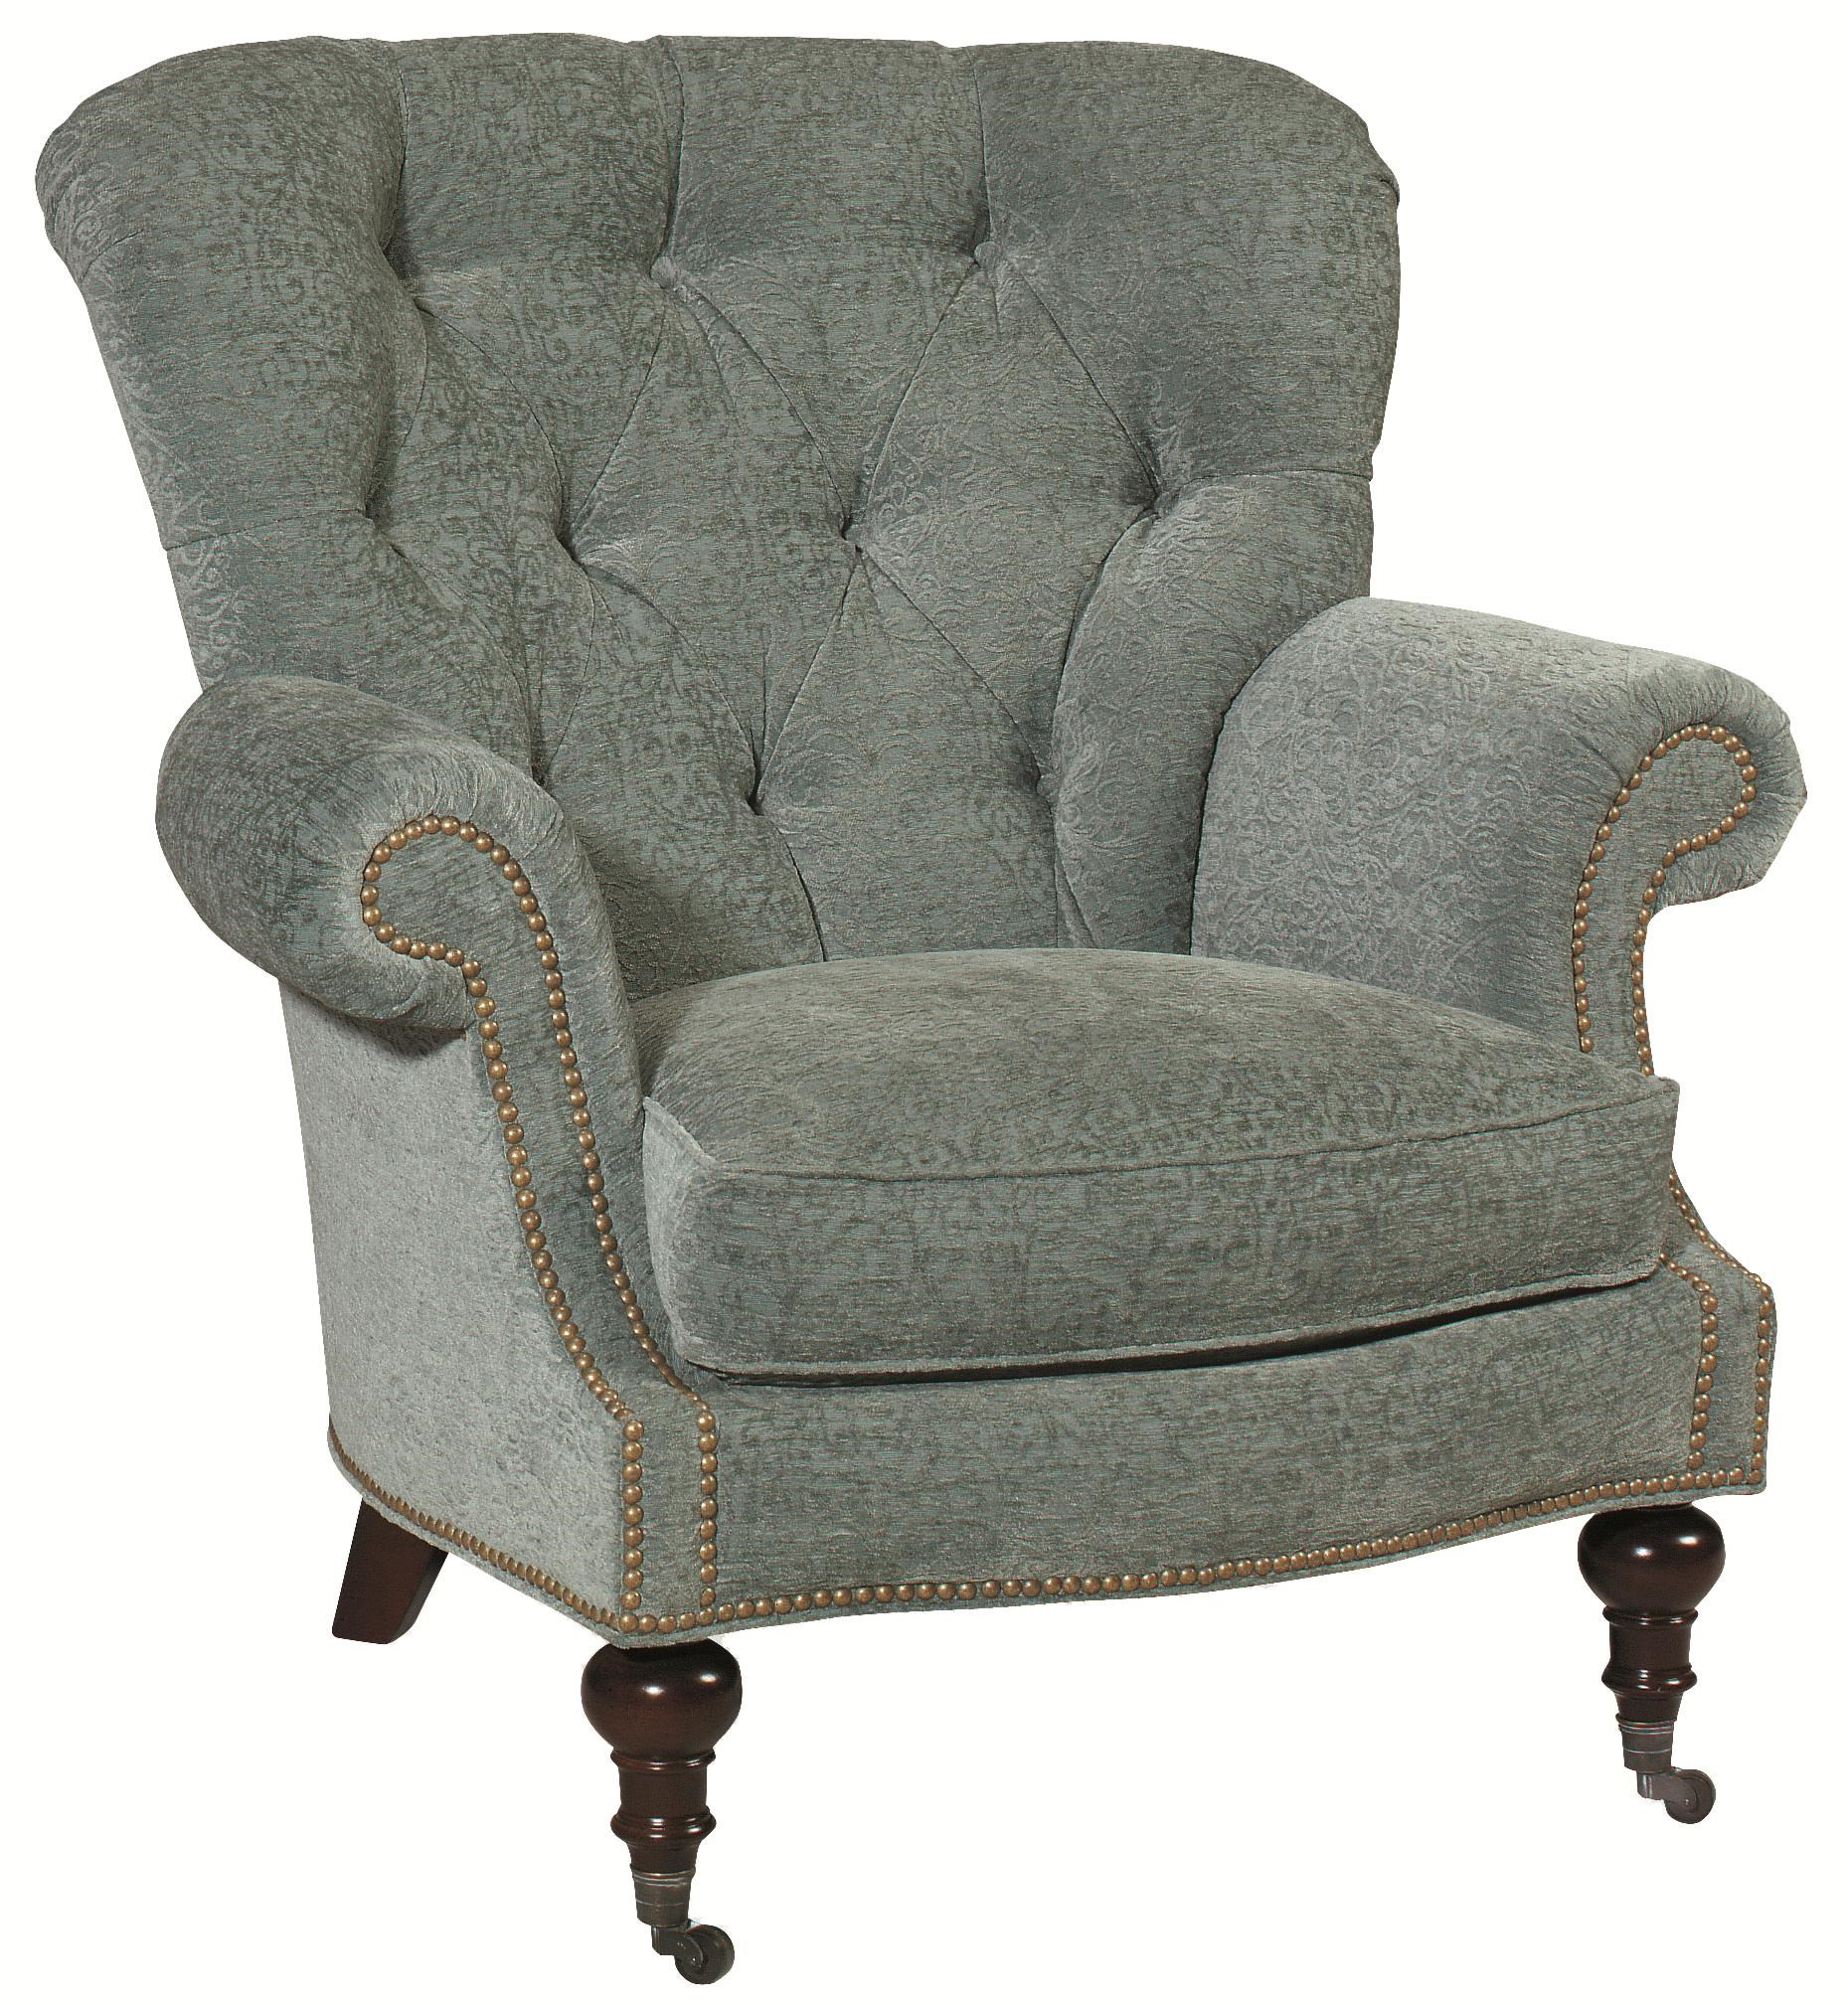 Thomasville® Upholstered Chairs And Ottomans Vienna Tufted Back Chair With  Nail Head Trim